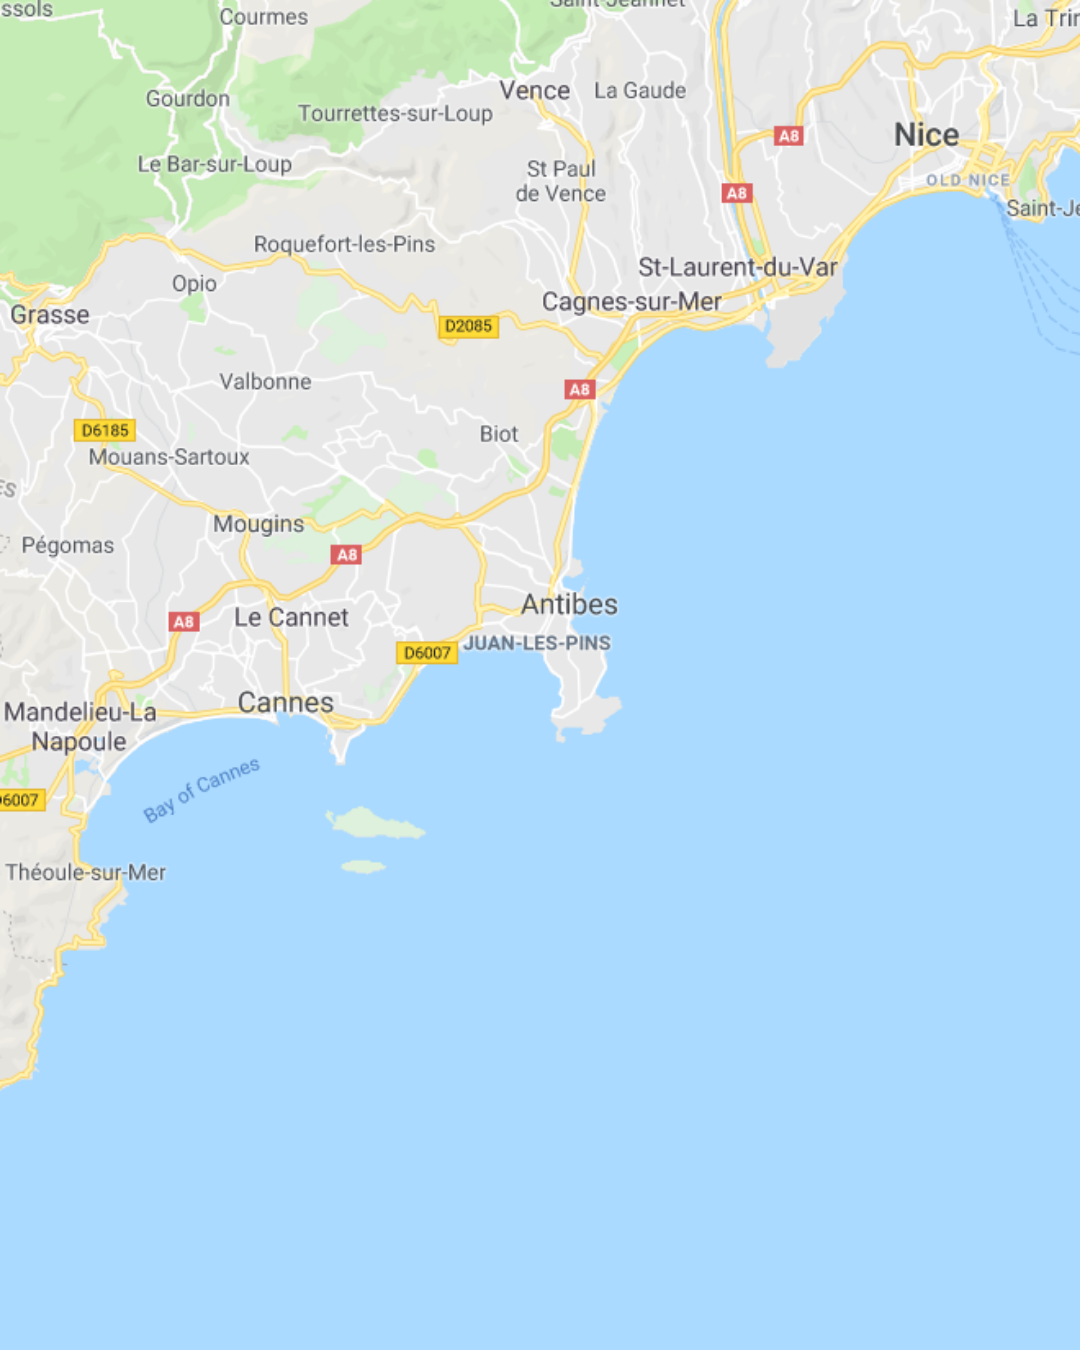 Fly from Dublin to Nice Cote d'Azur to Cap d'Antibes French Riviera France